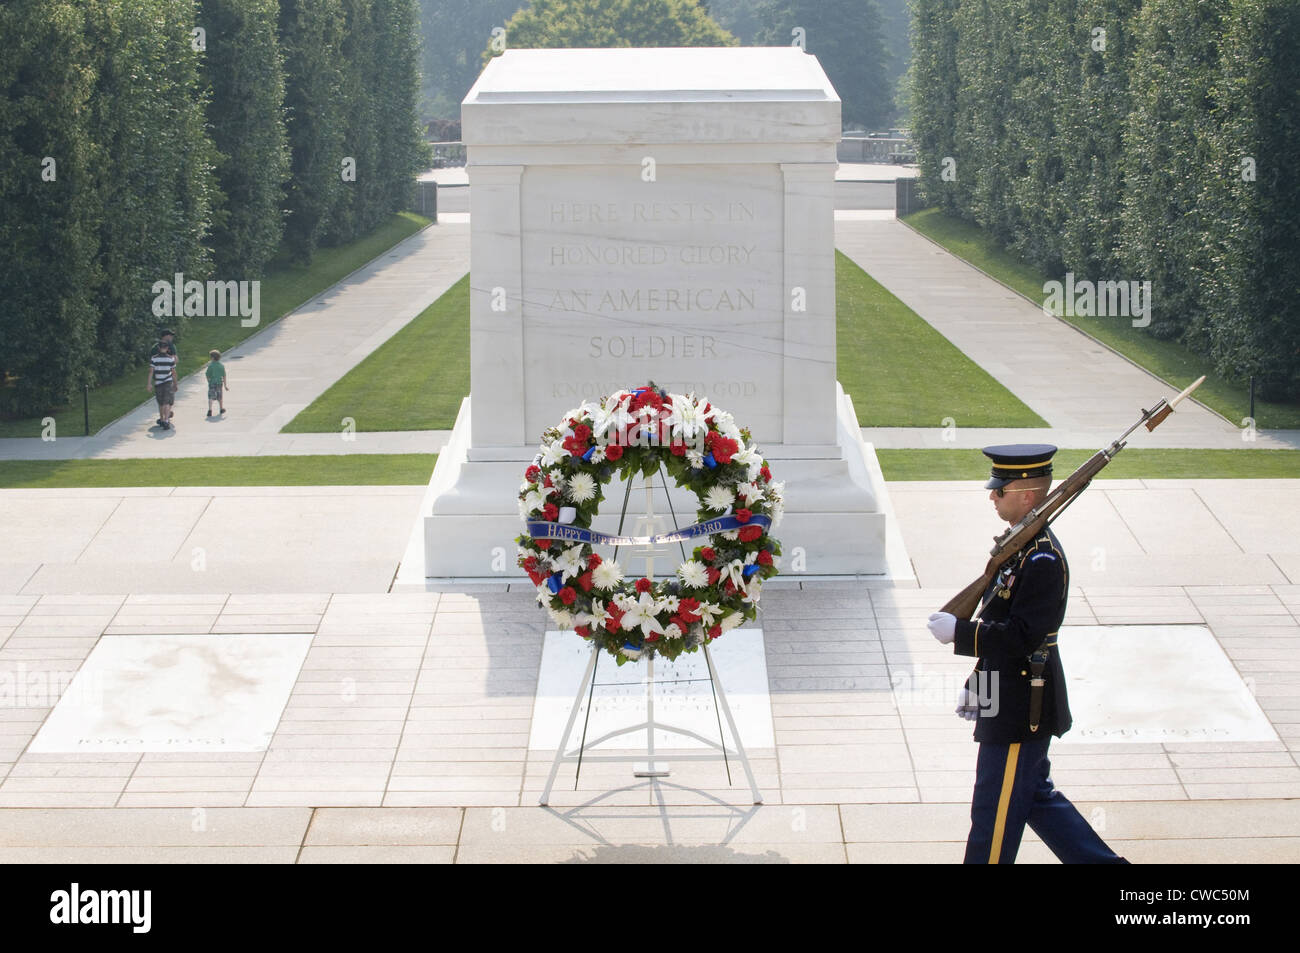 A soldier guards the Tomb of the Unknown Soldier at Arlington National Cemetery. Army's senior leadership laid - Stock Image